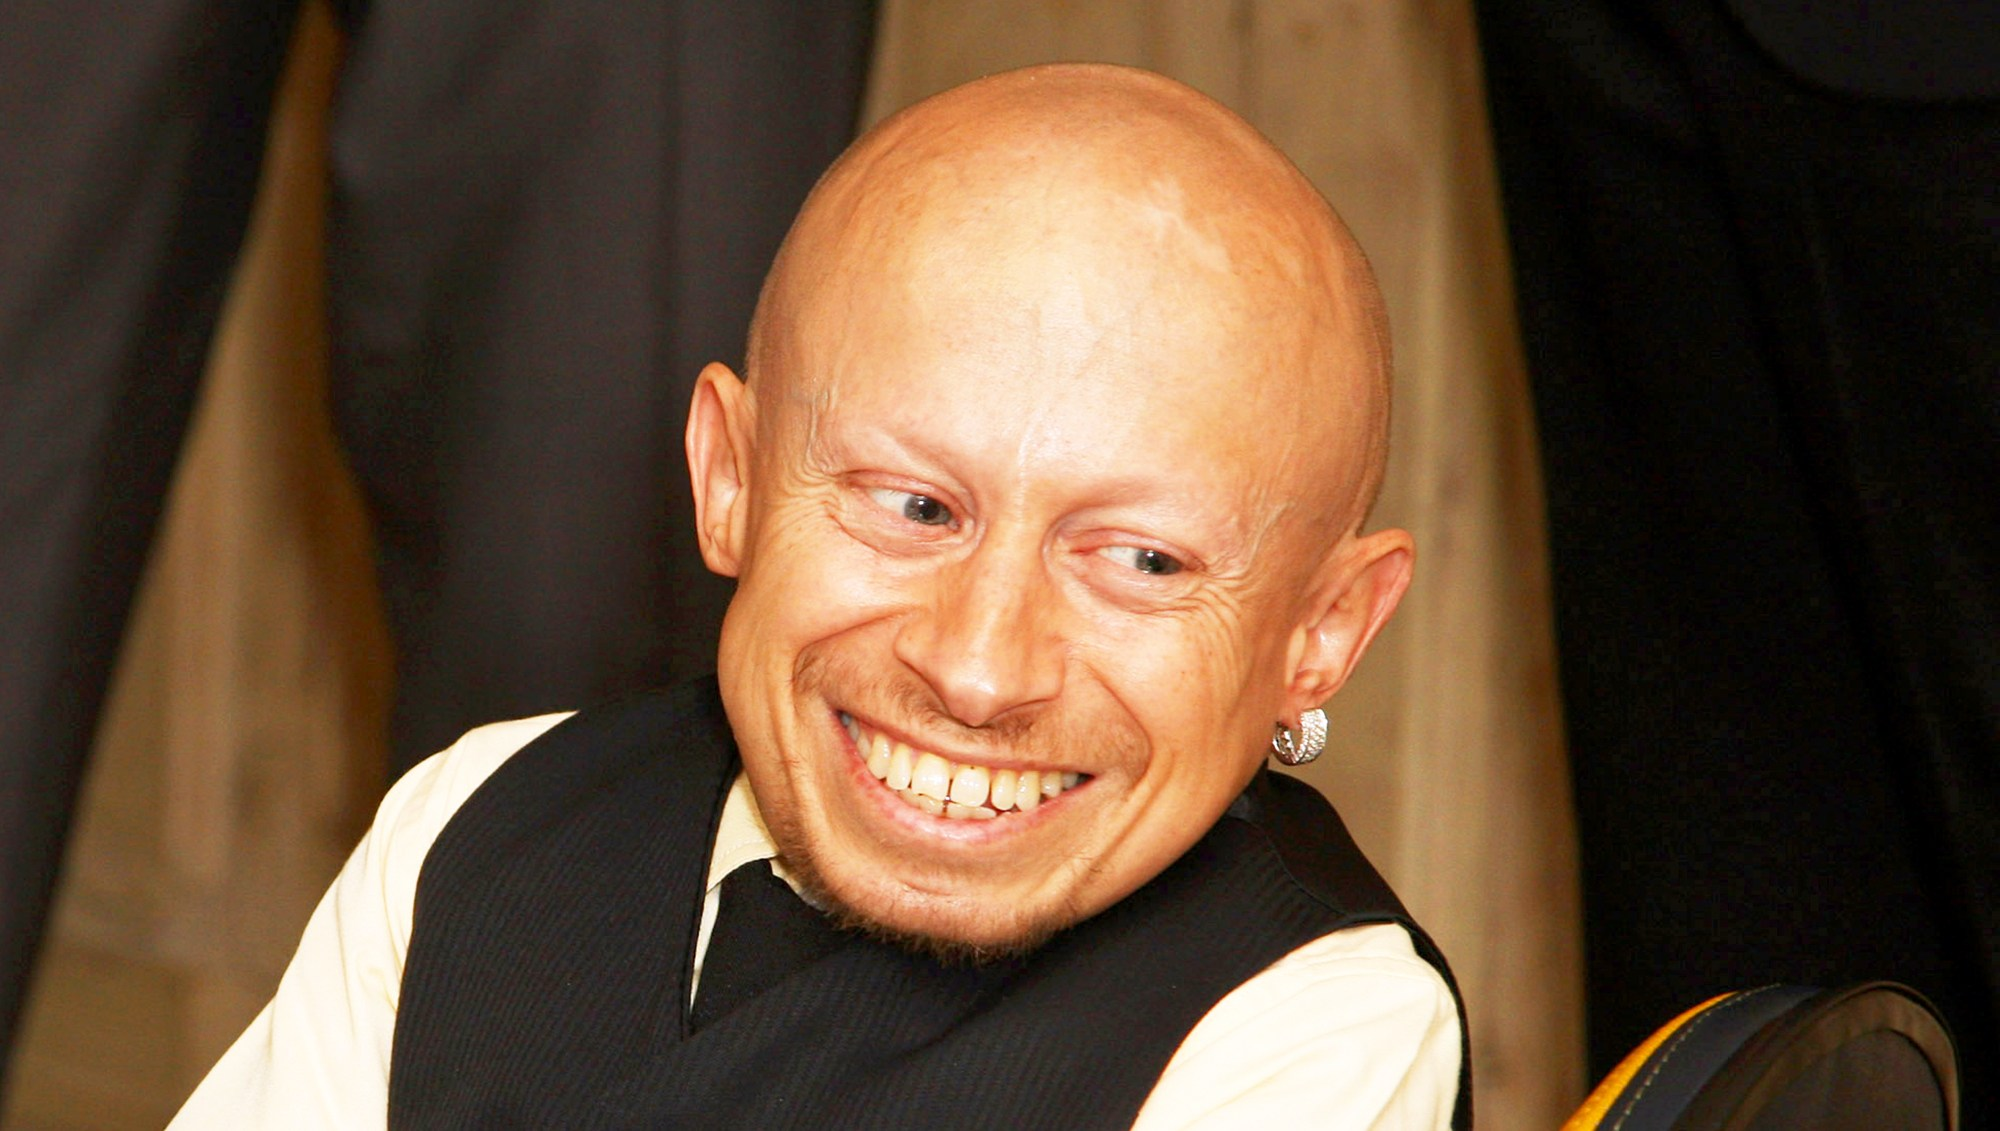 Verne Troyer attends the 2009 UK premiere of The Imaginarium of Doctor Parnassus held at The Soho Hotel in London, England.